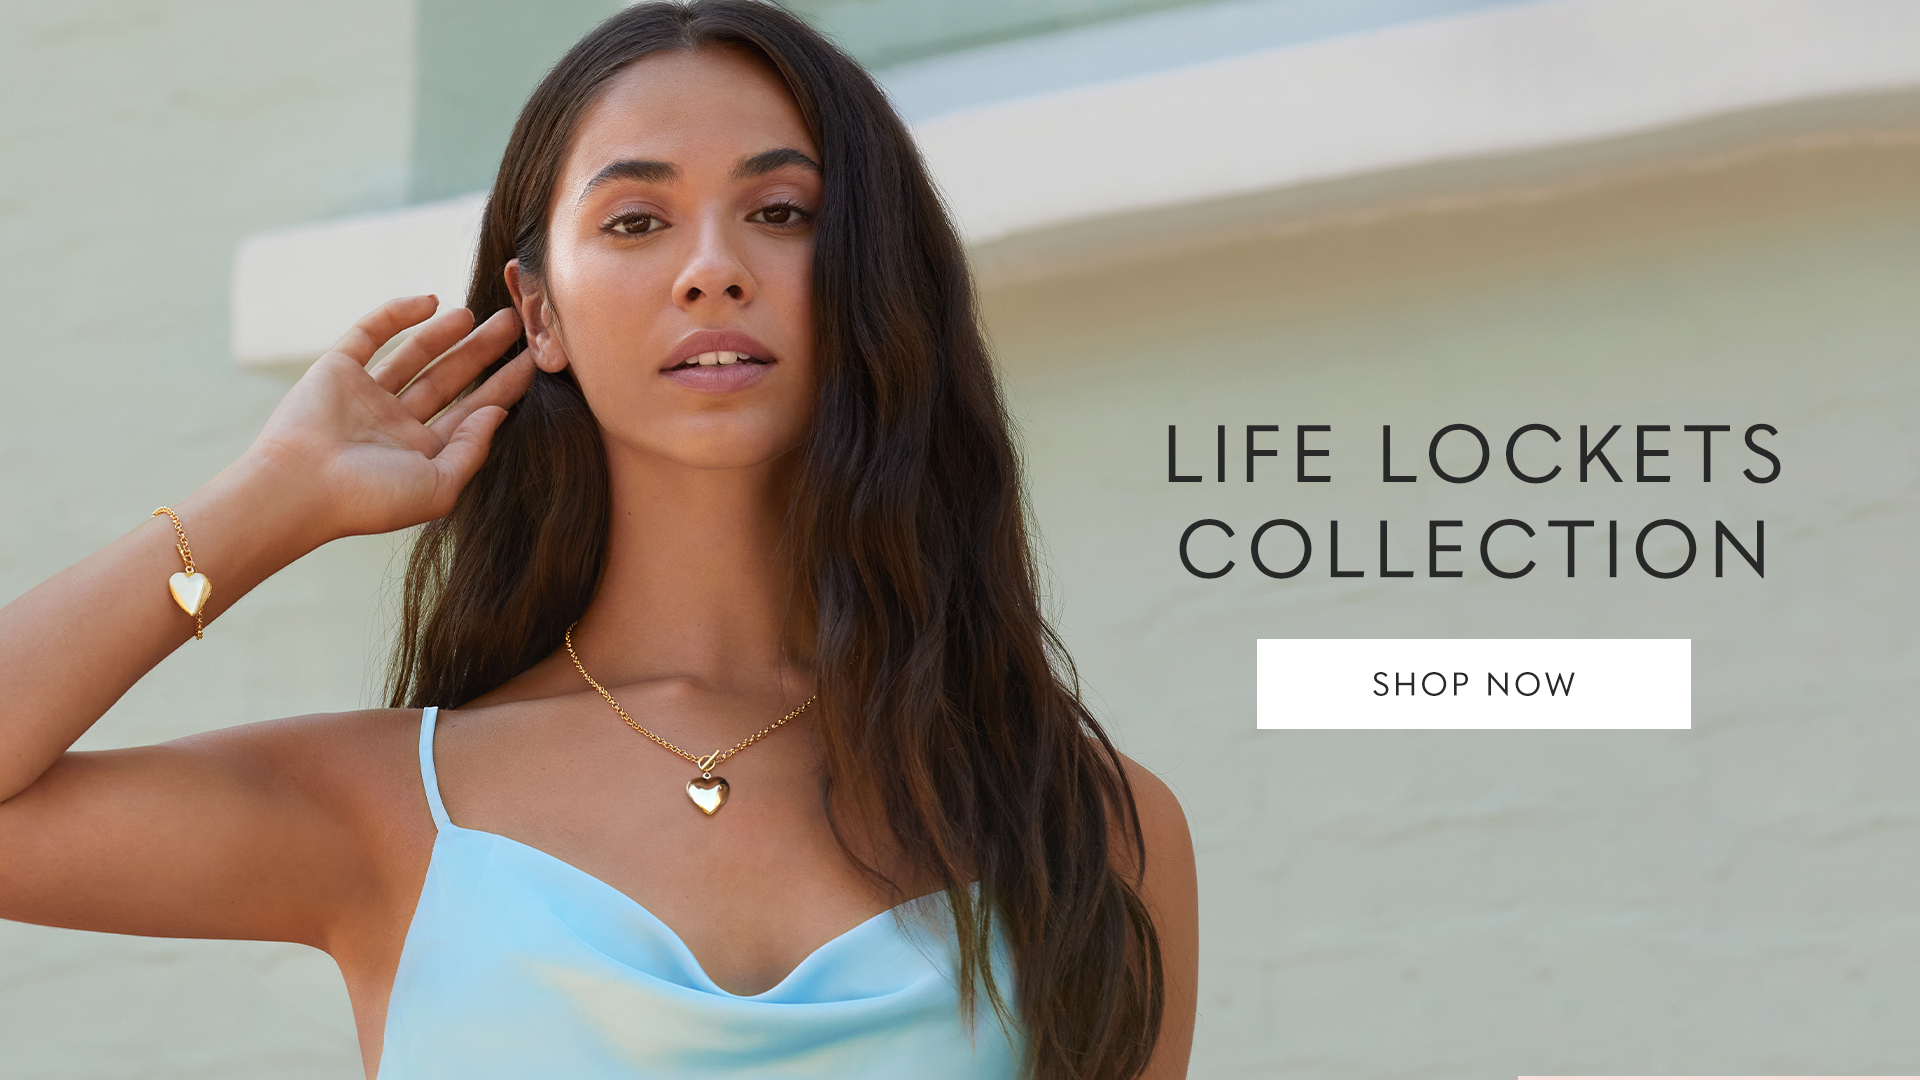 Life Lockets Collection